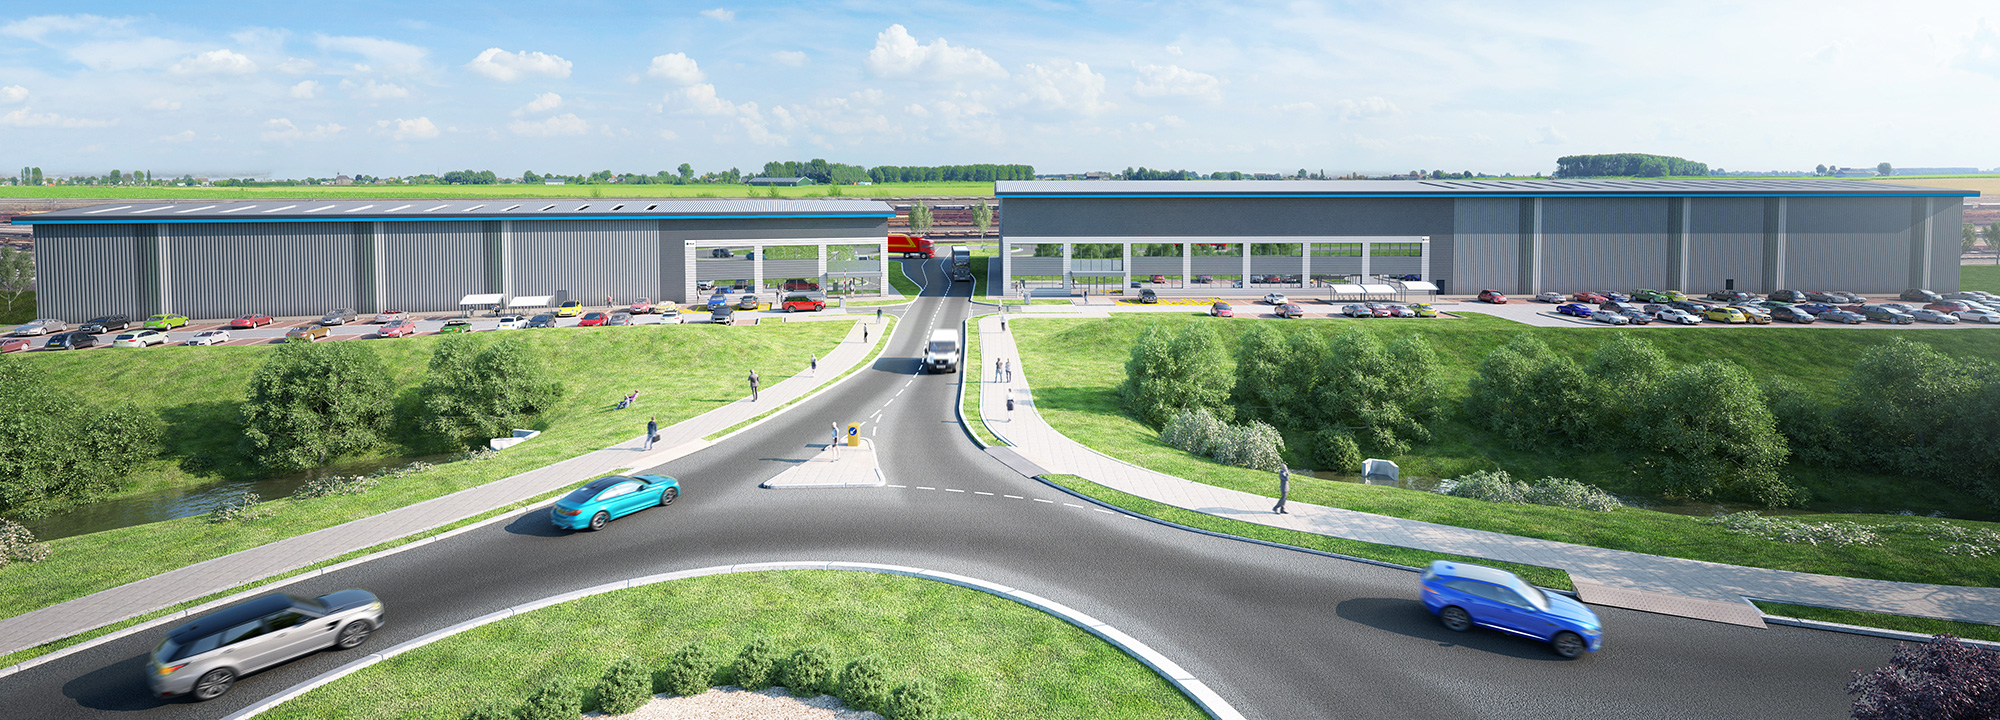 PLP_Crewe_new_industrial_distribution_units - design_and_build_opportunity